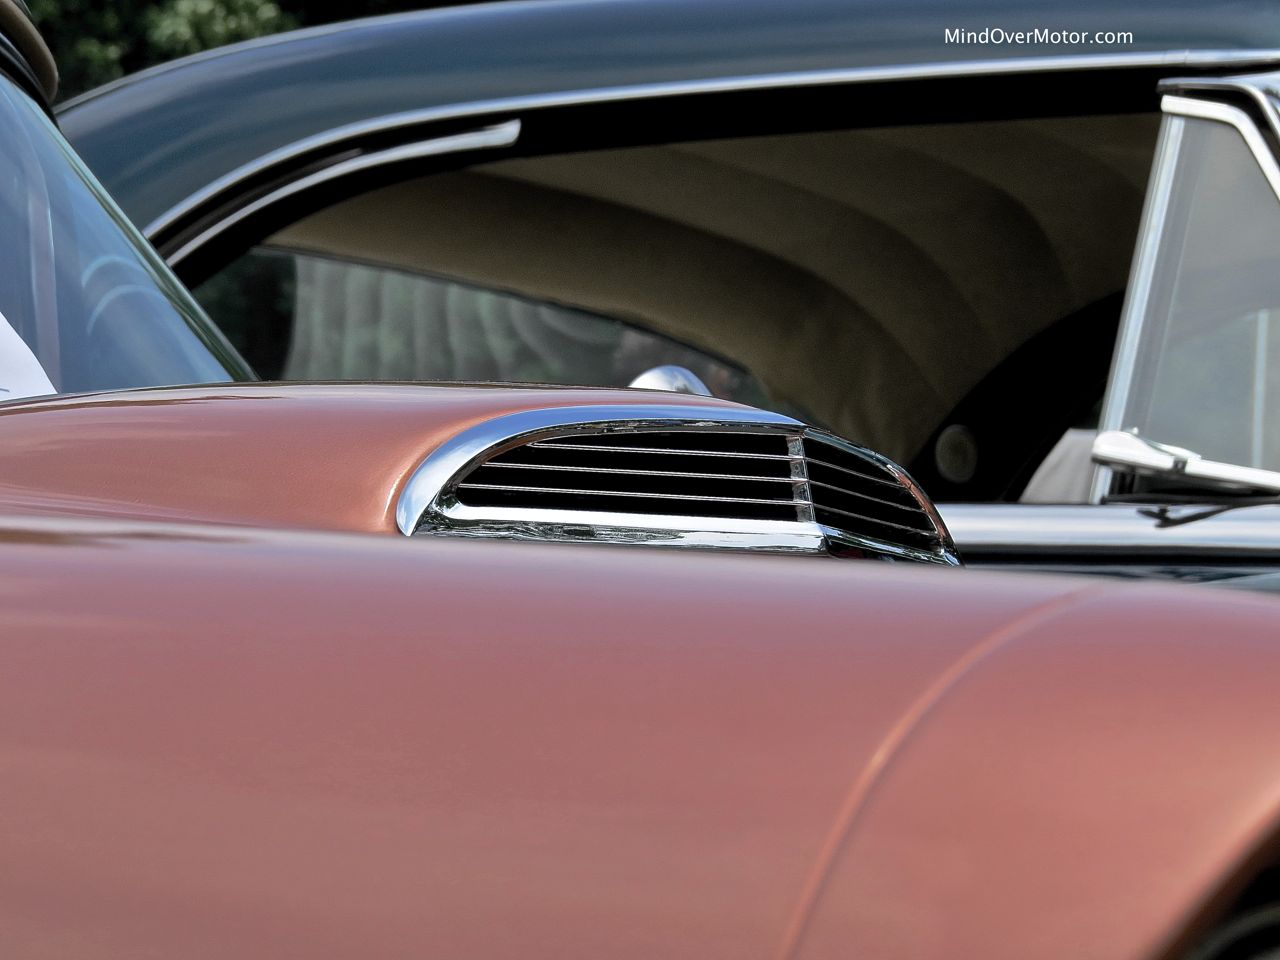 1957 Ford Thunderbird Hood Scoop